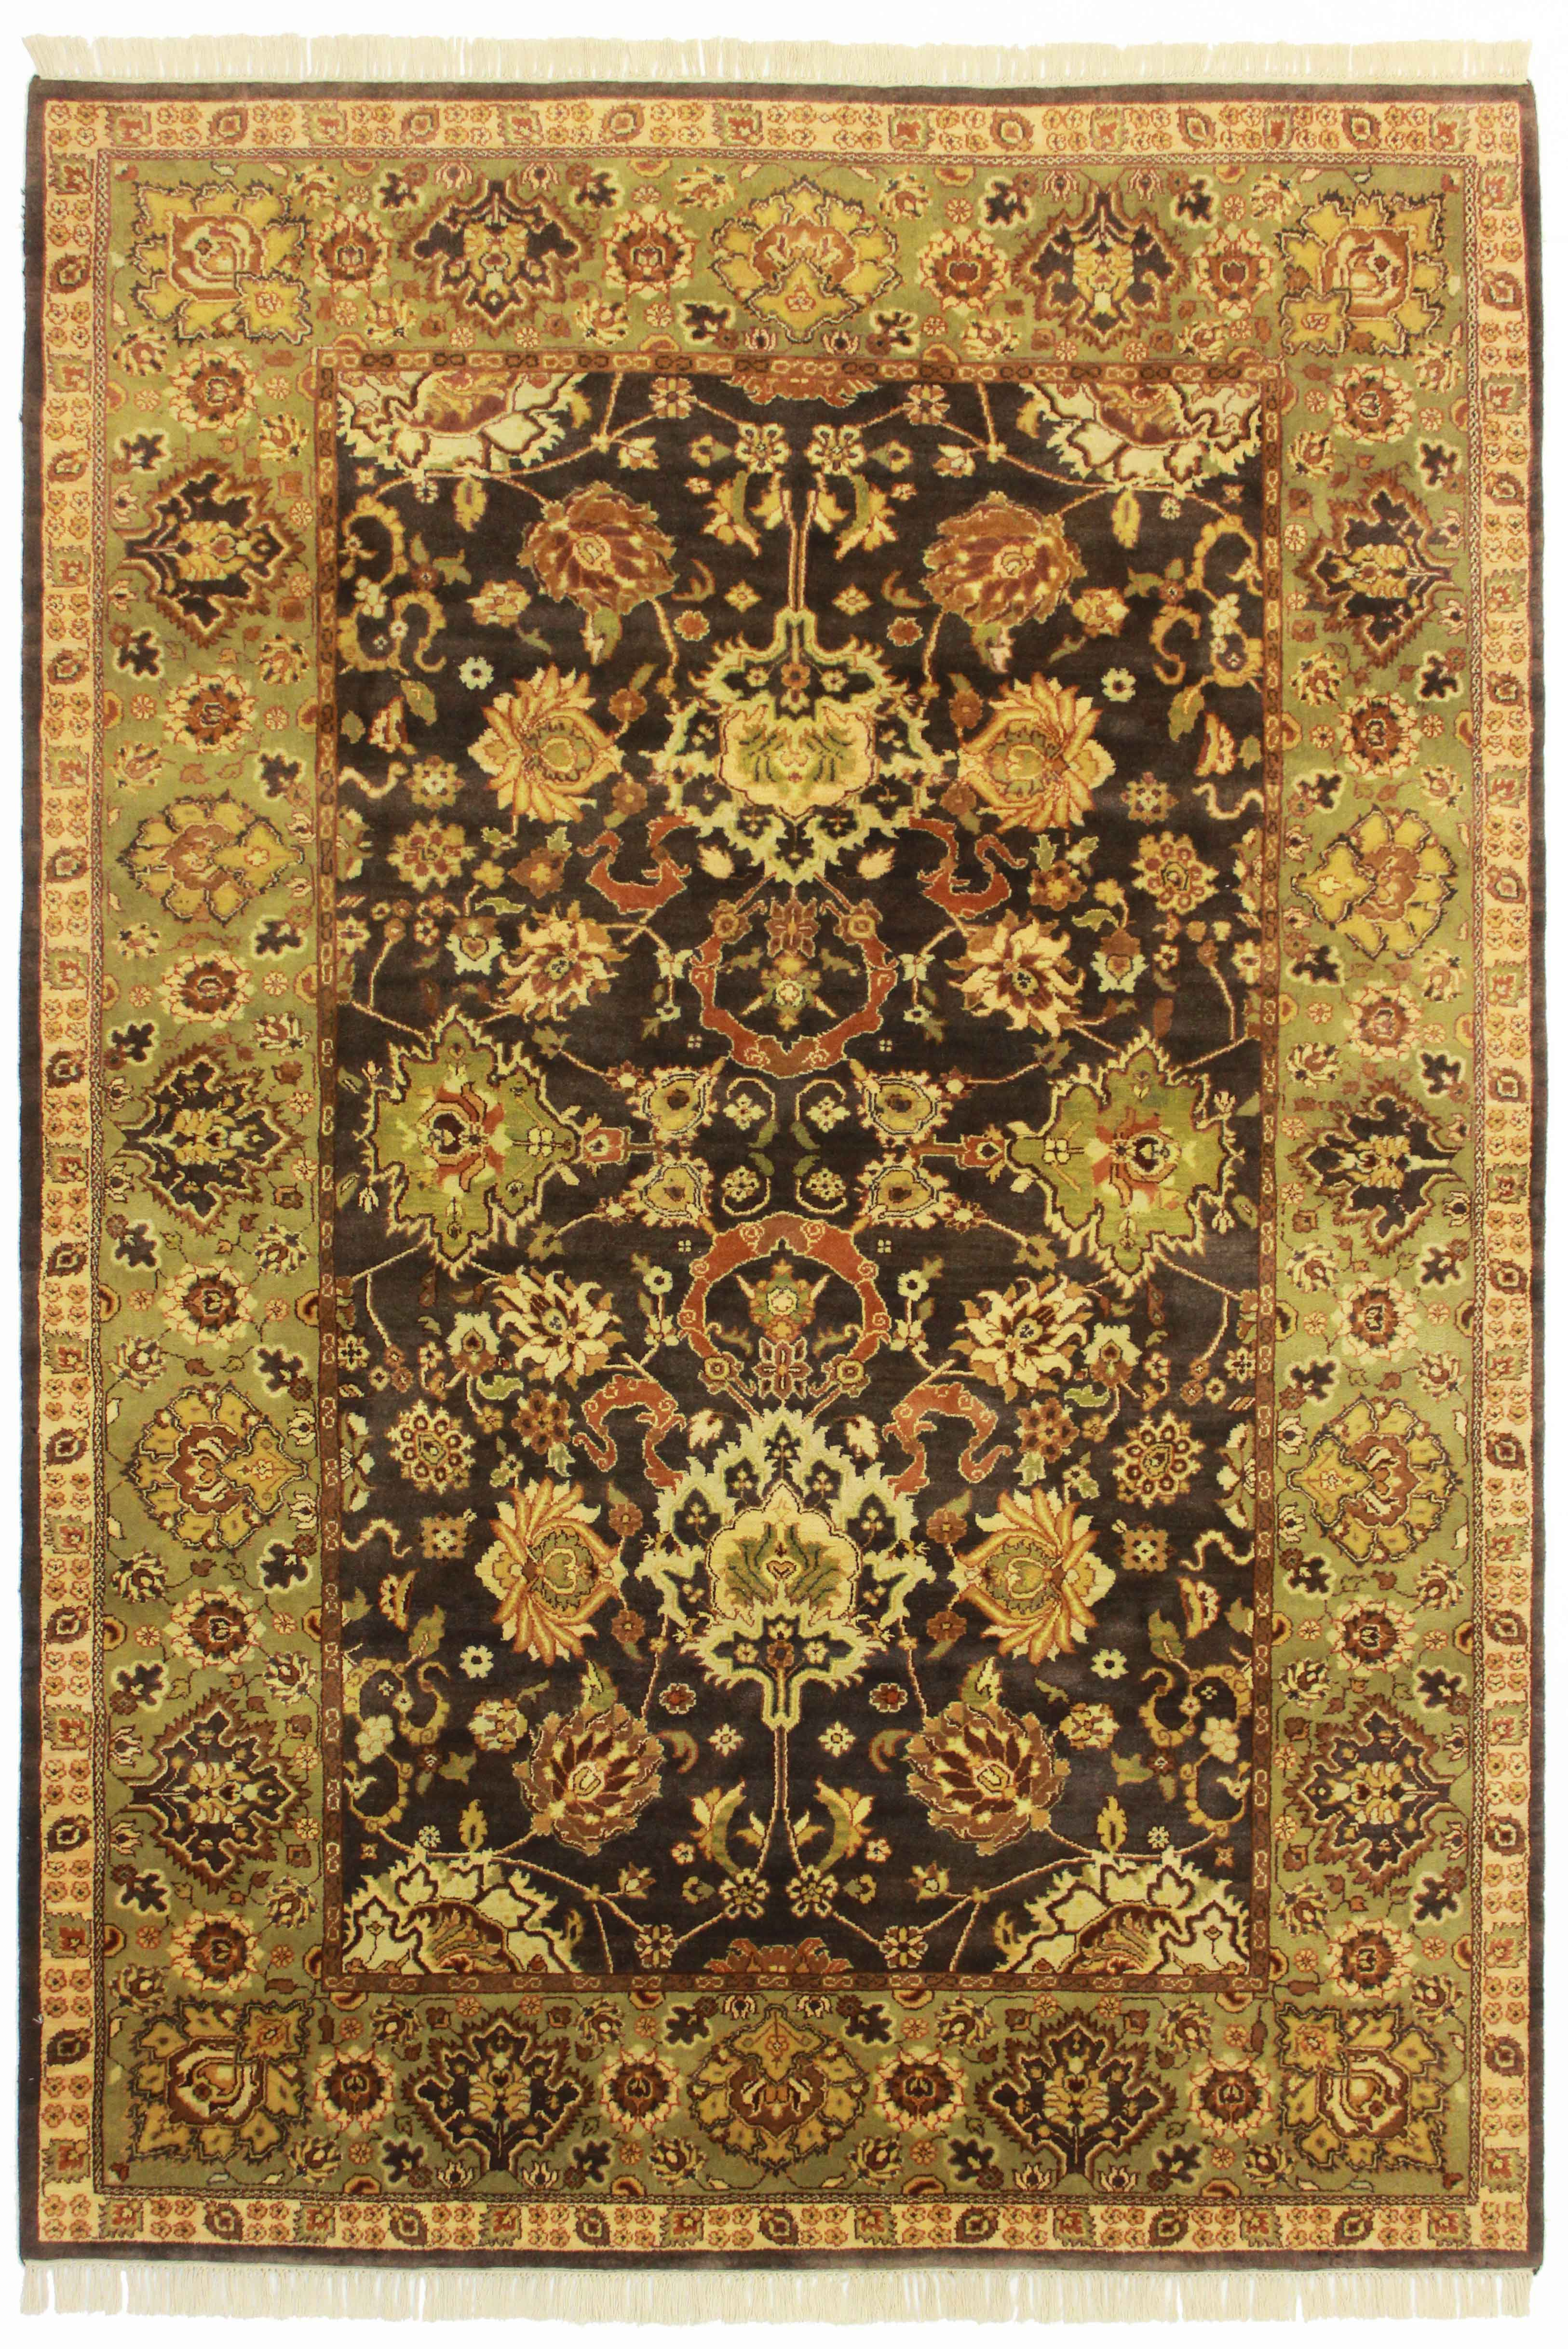 6 X 8 10 Indian Hand Knotted Wool Rug 13023